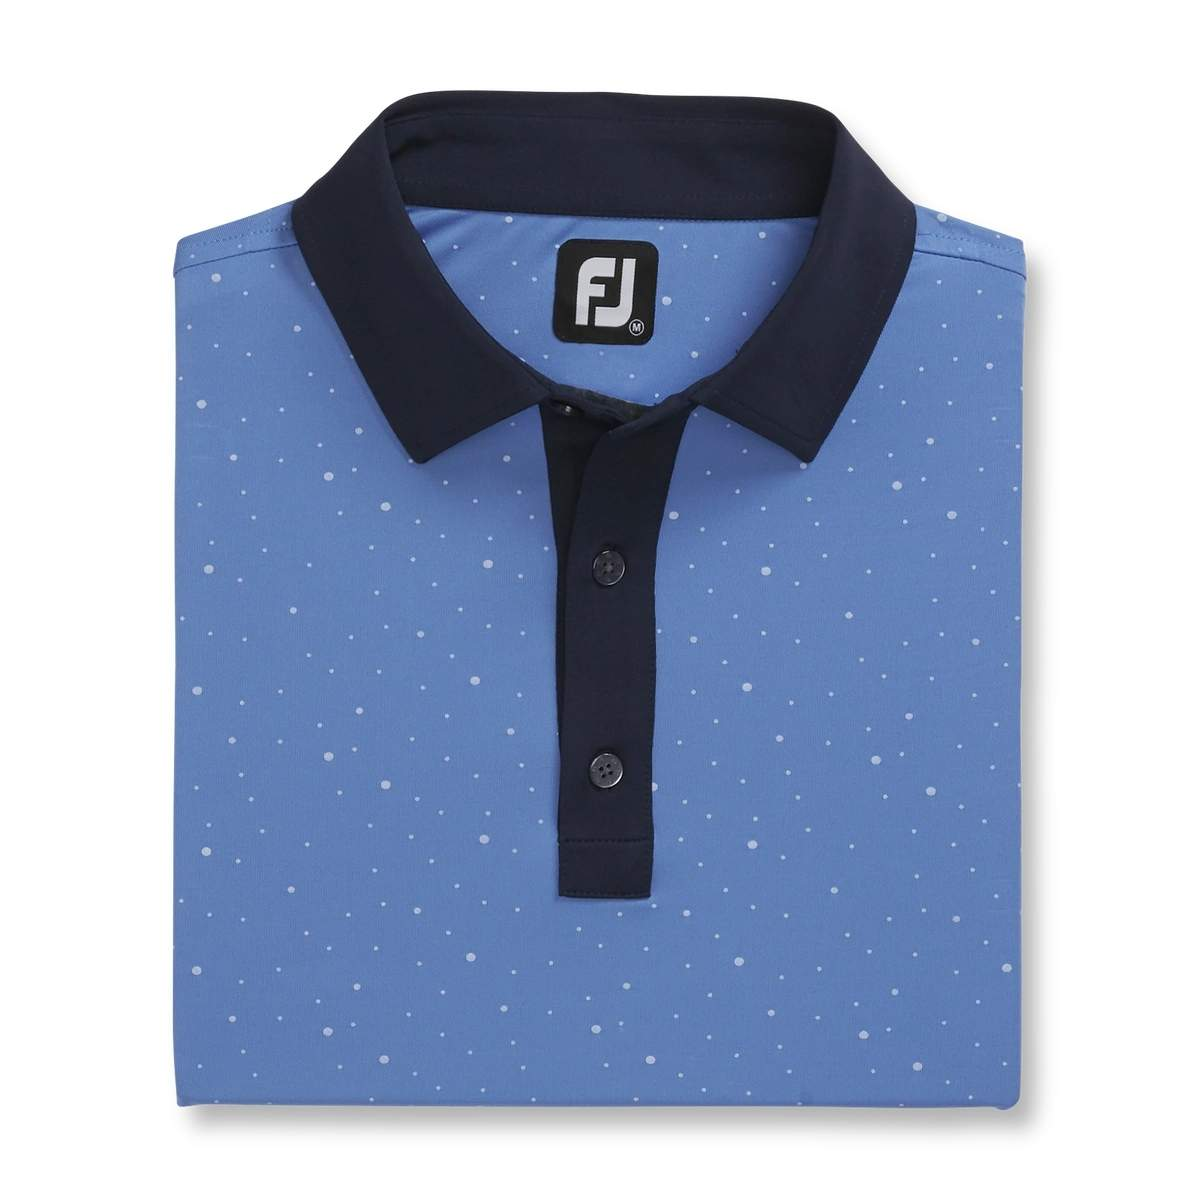 FootJoy Men's Lisle Multidot Print Lagoon/Navy Polo